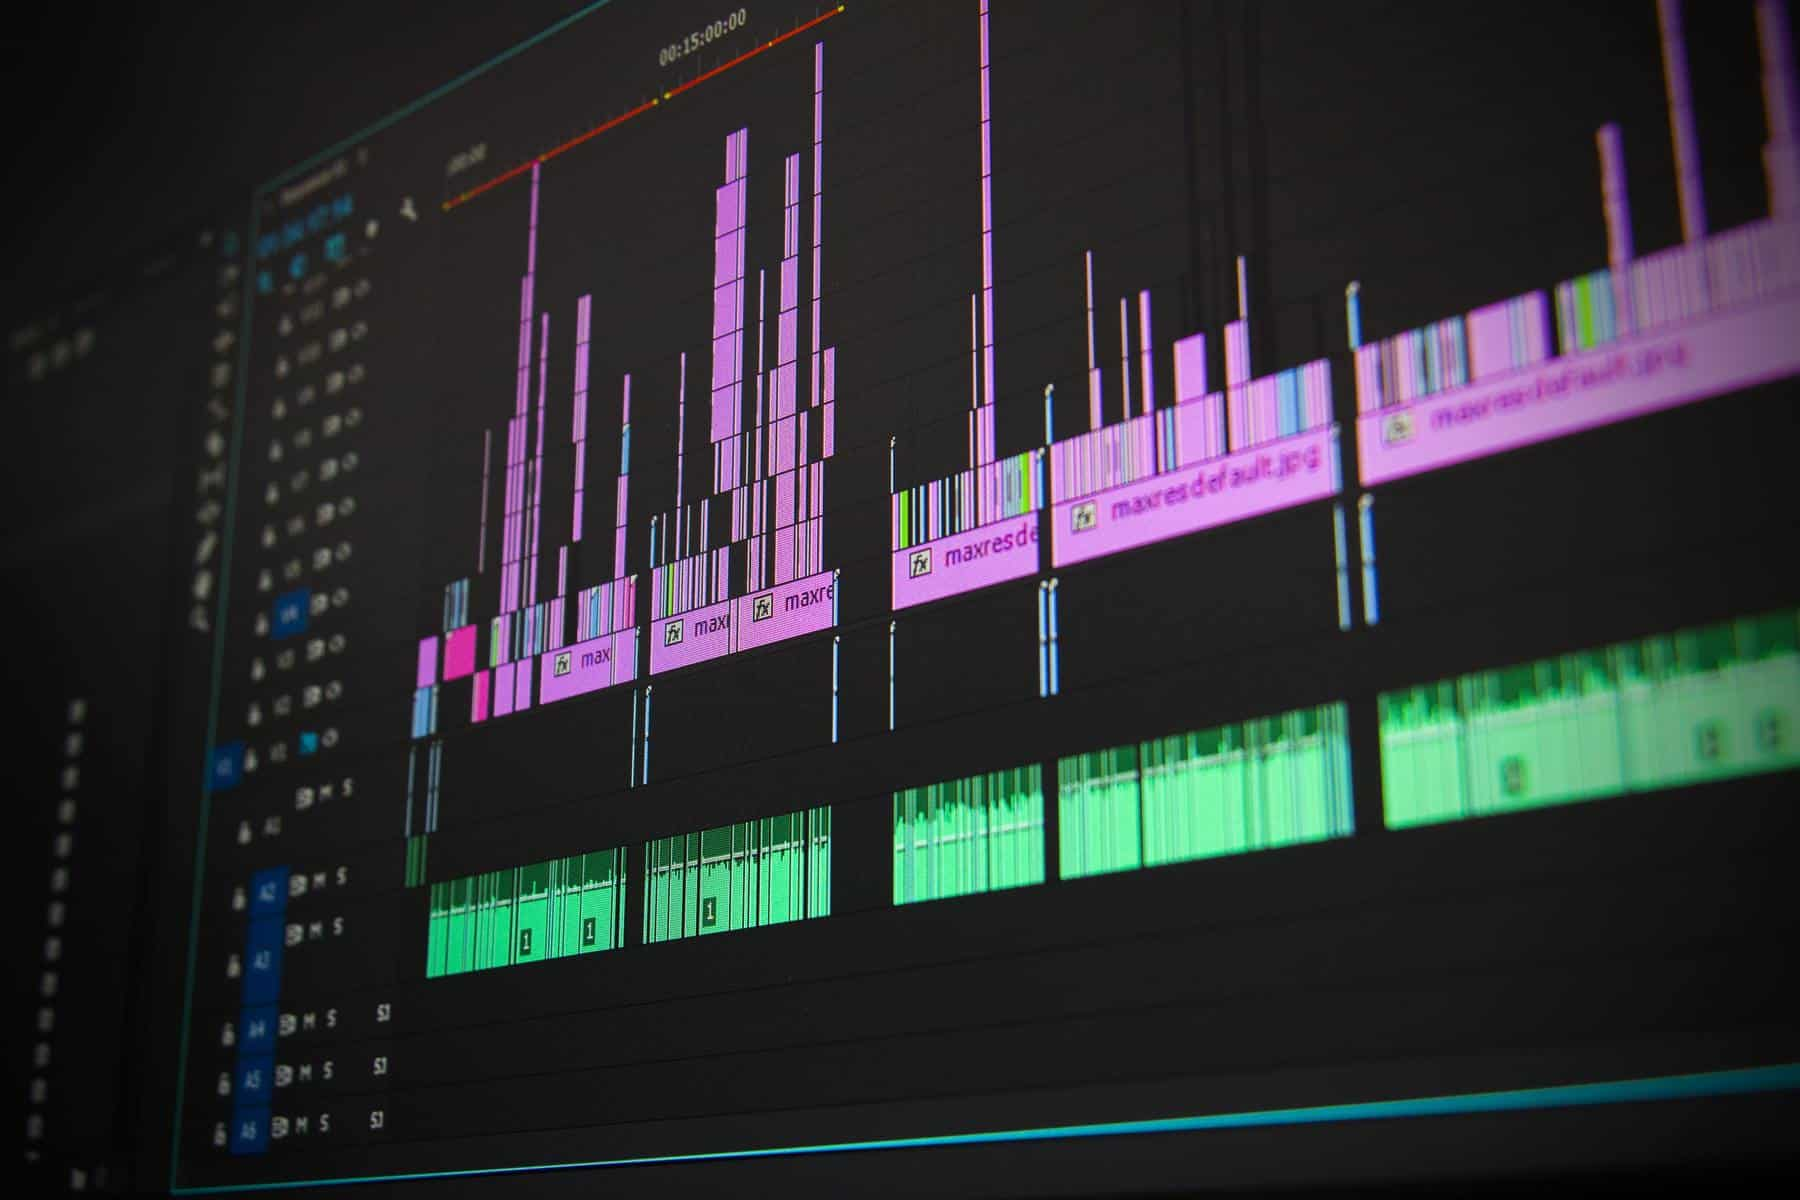 13 Of The Best Free Audio Editors In 2020 Download Links Included